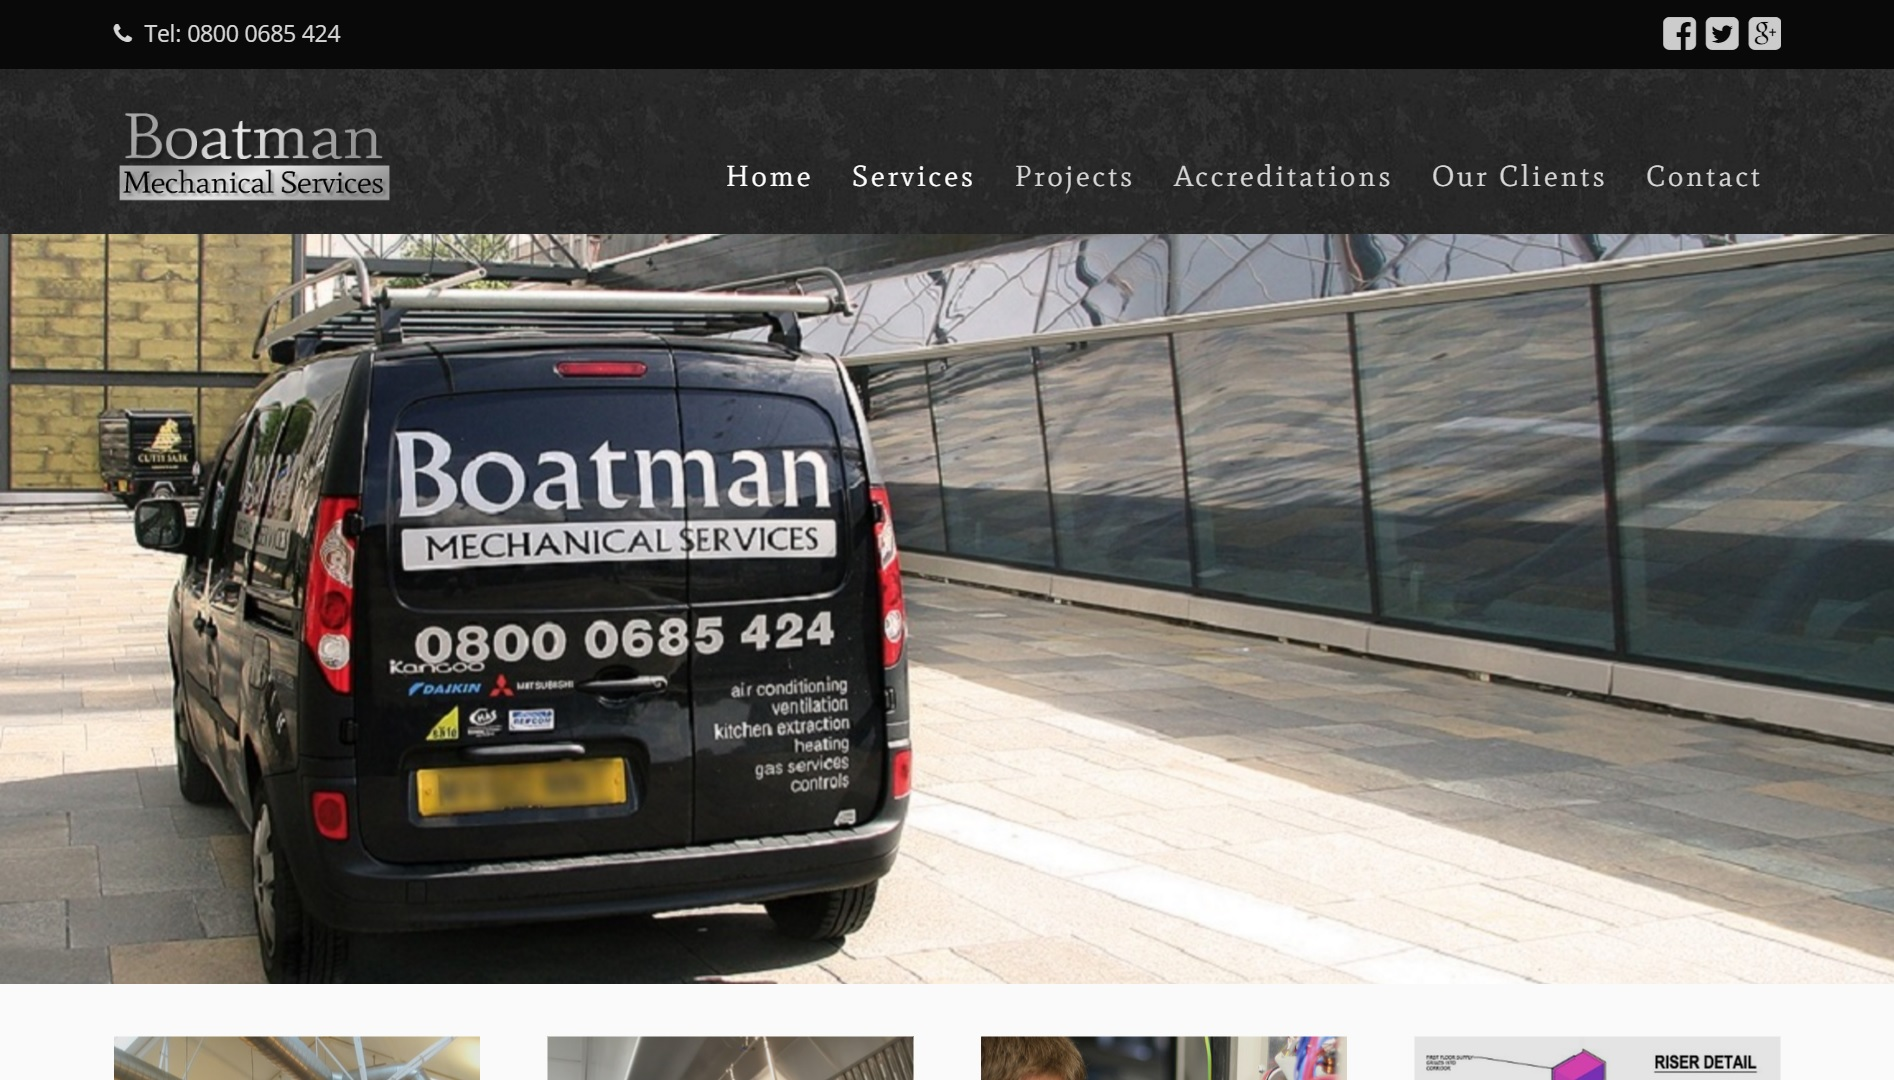 Website design for Boatman Mechanical